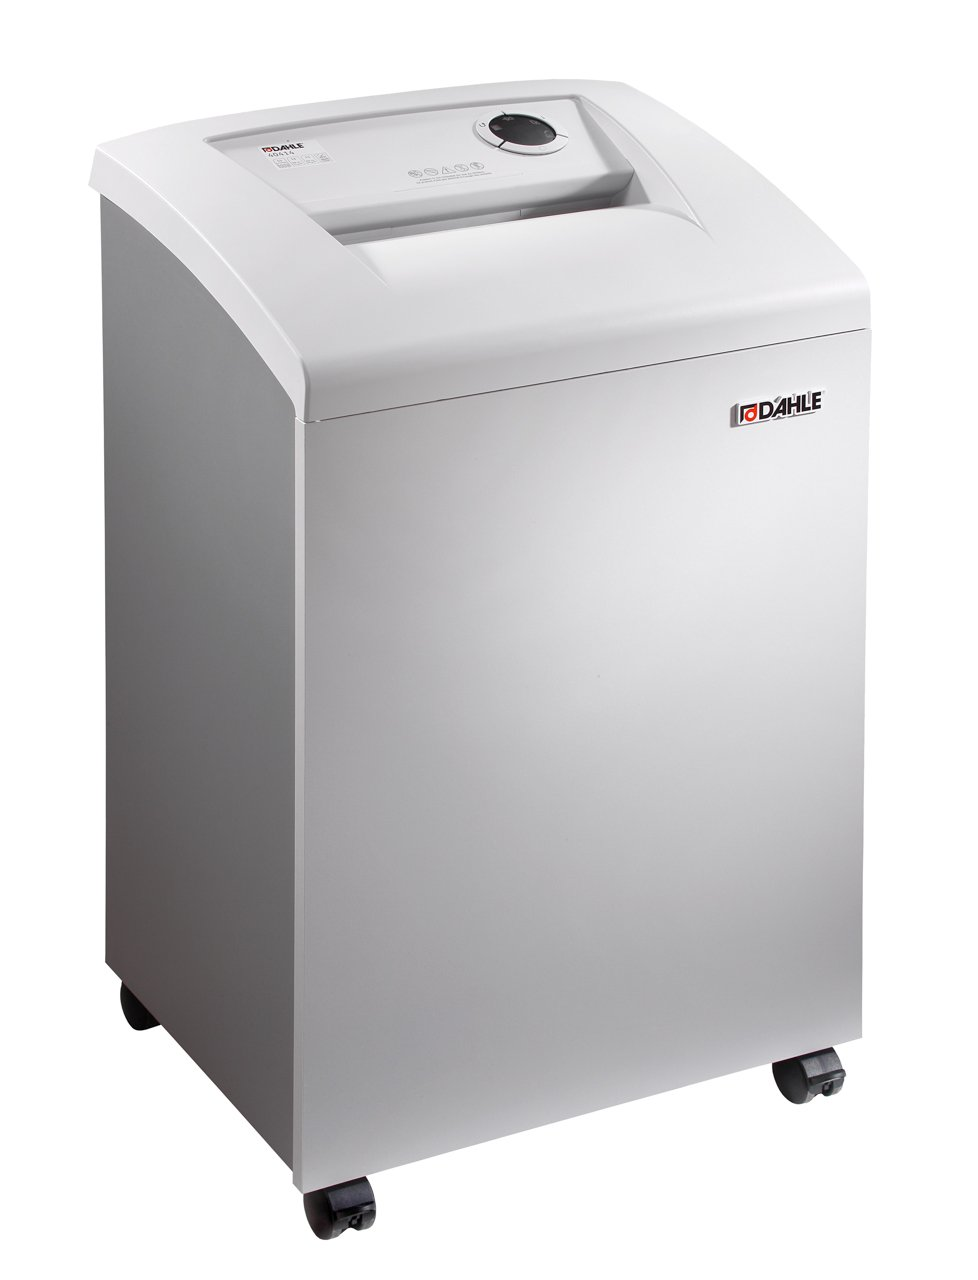 Dahle 40434 High Security Office Shredder, 12 Sheet, NSA Approved for NSA/CSS Specification 02-01, Security Level P-7